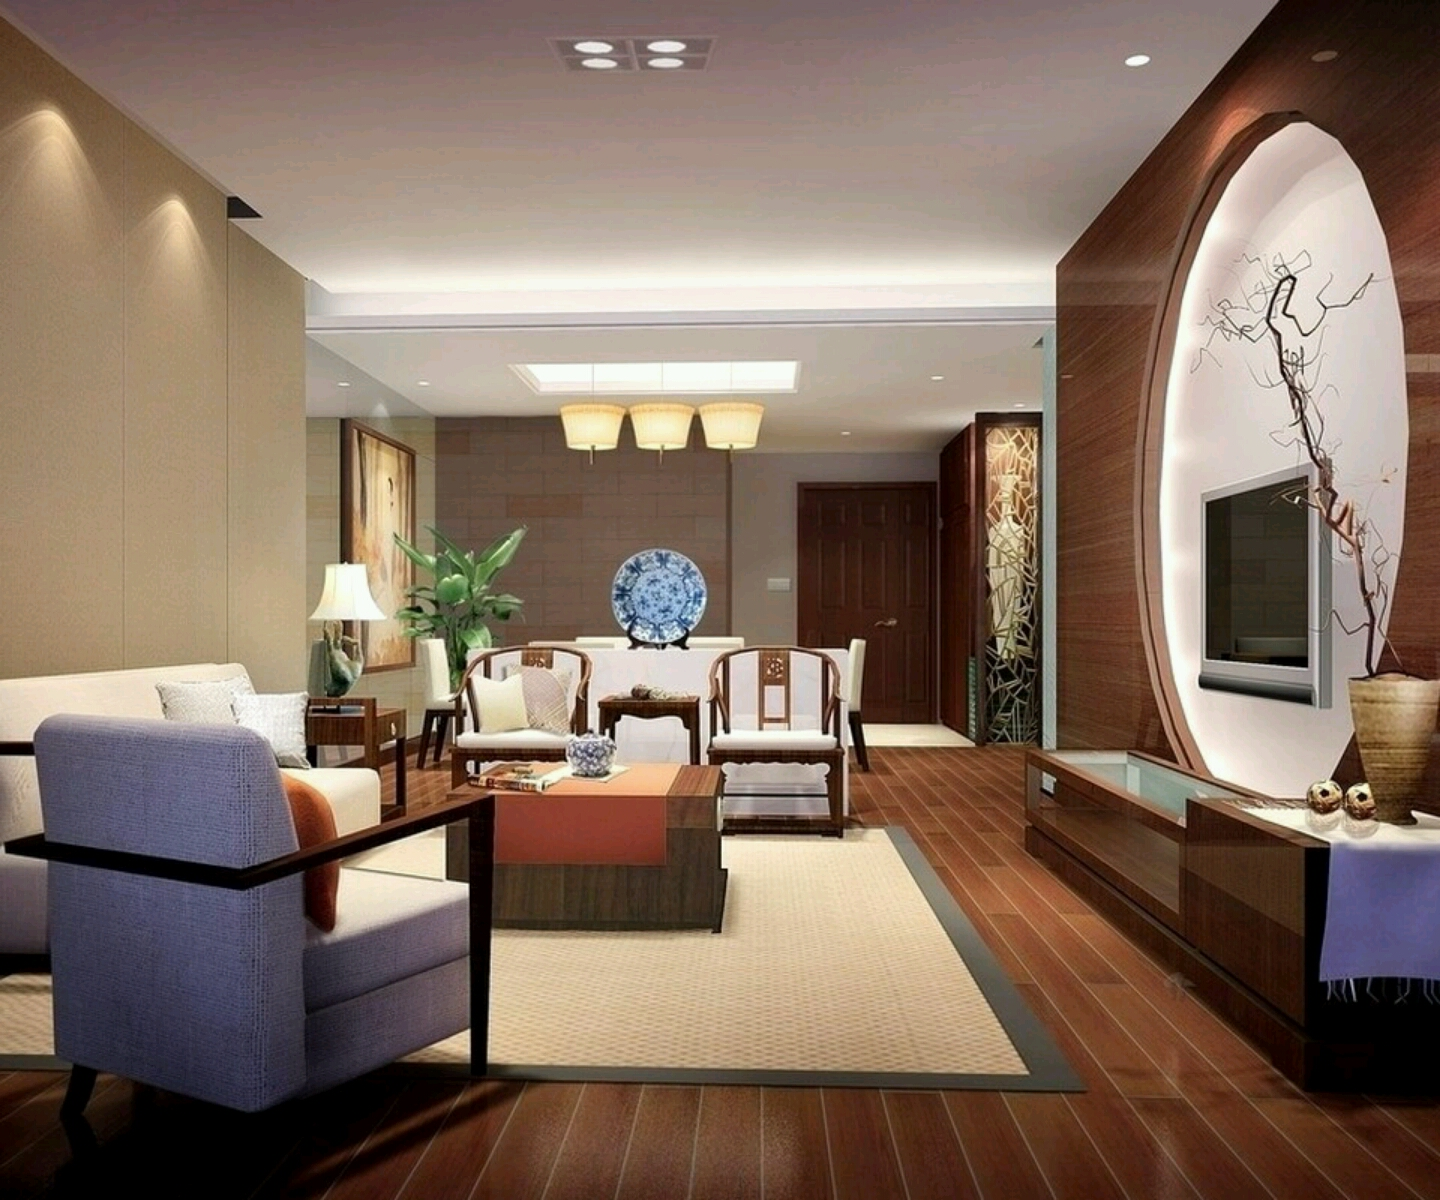 Home Design Ideas Interior: Luxury Homes Interior Decoration Living Room Designs Ideas